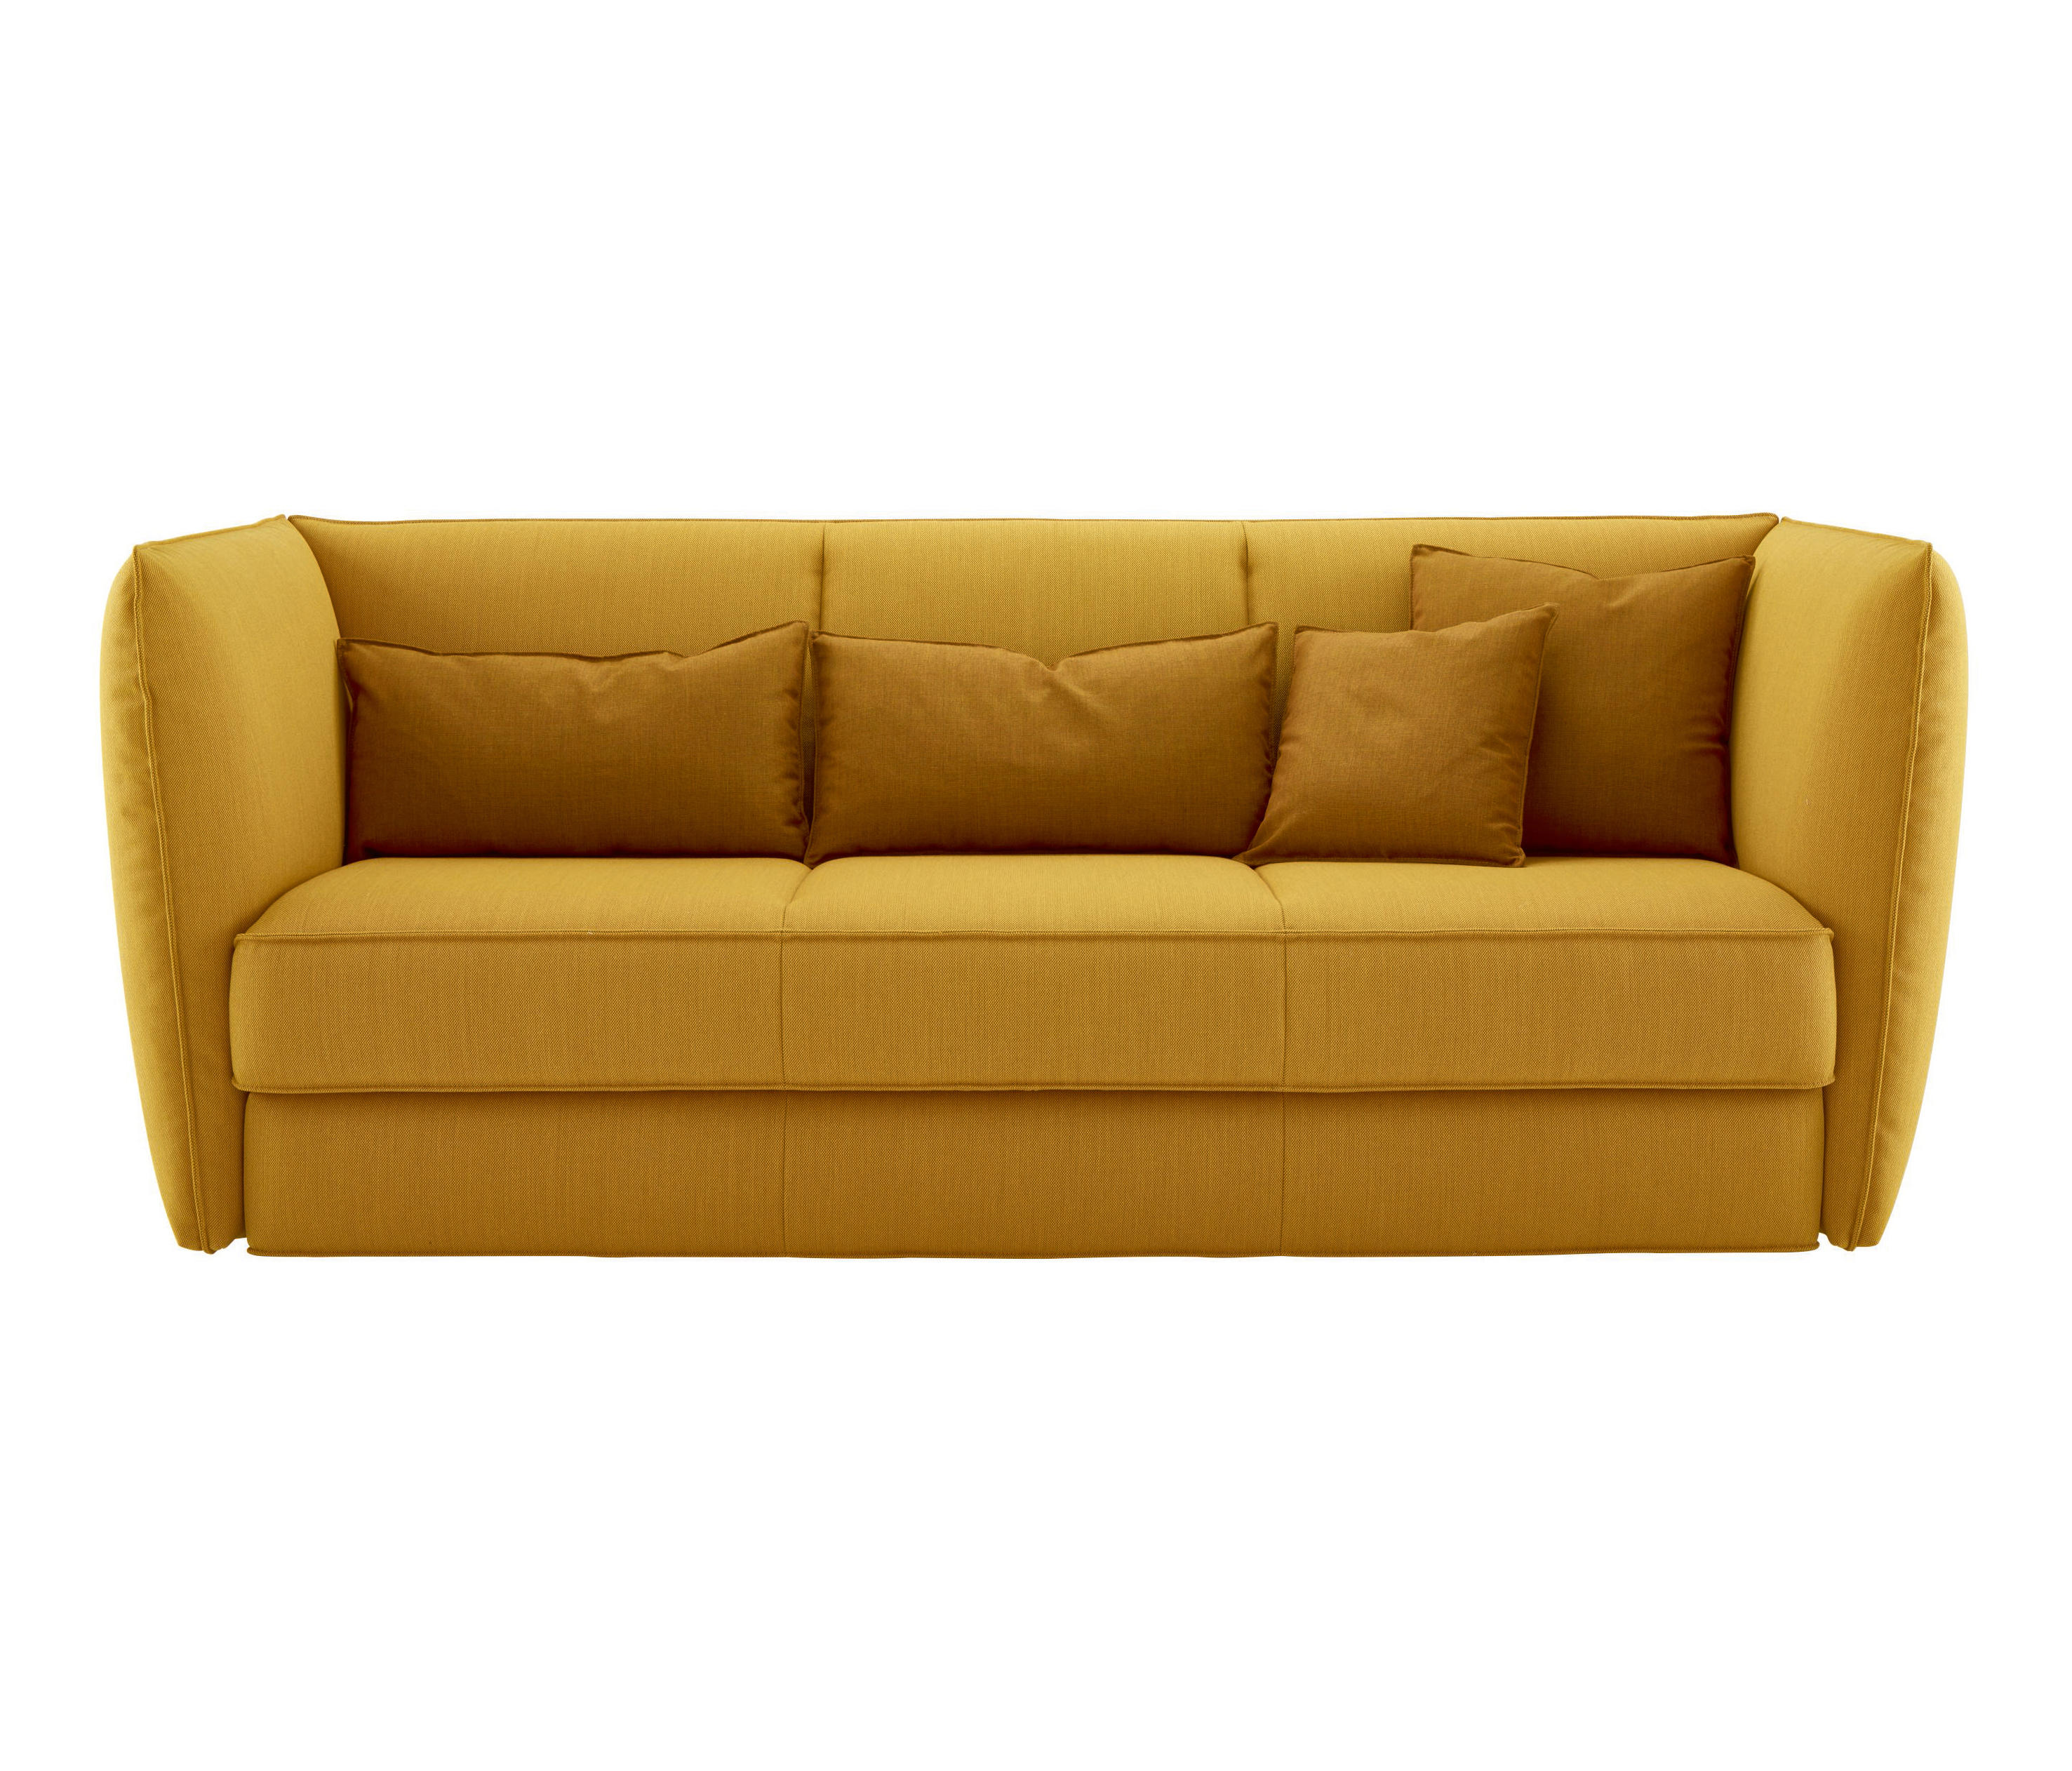 Softly Bed Settee With 2 Arms Complete Item Sofas From Ligne